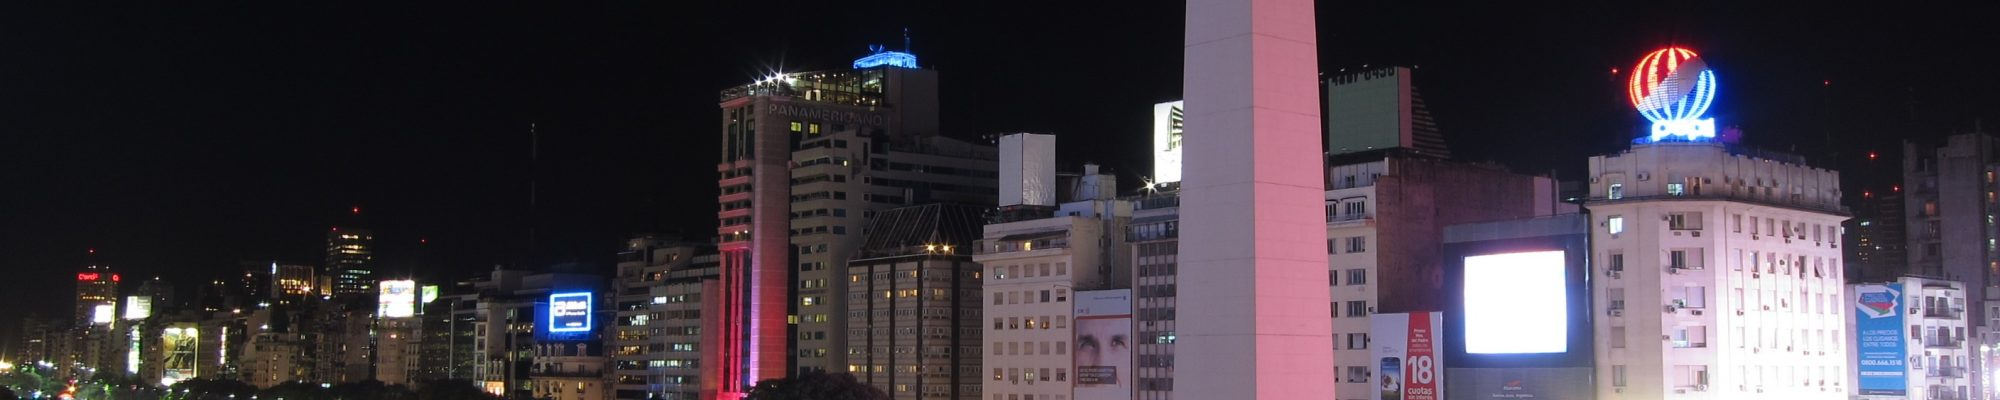 Buenos-Aires.-skyline-traffic-street-night-city-skyscraper-777328-pxhere